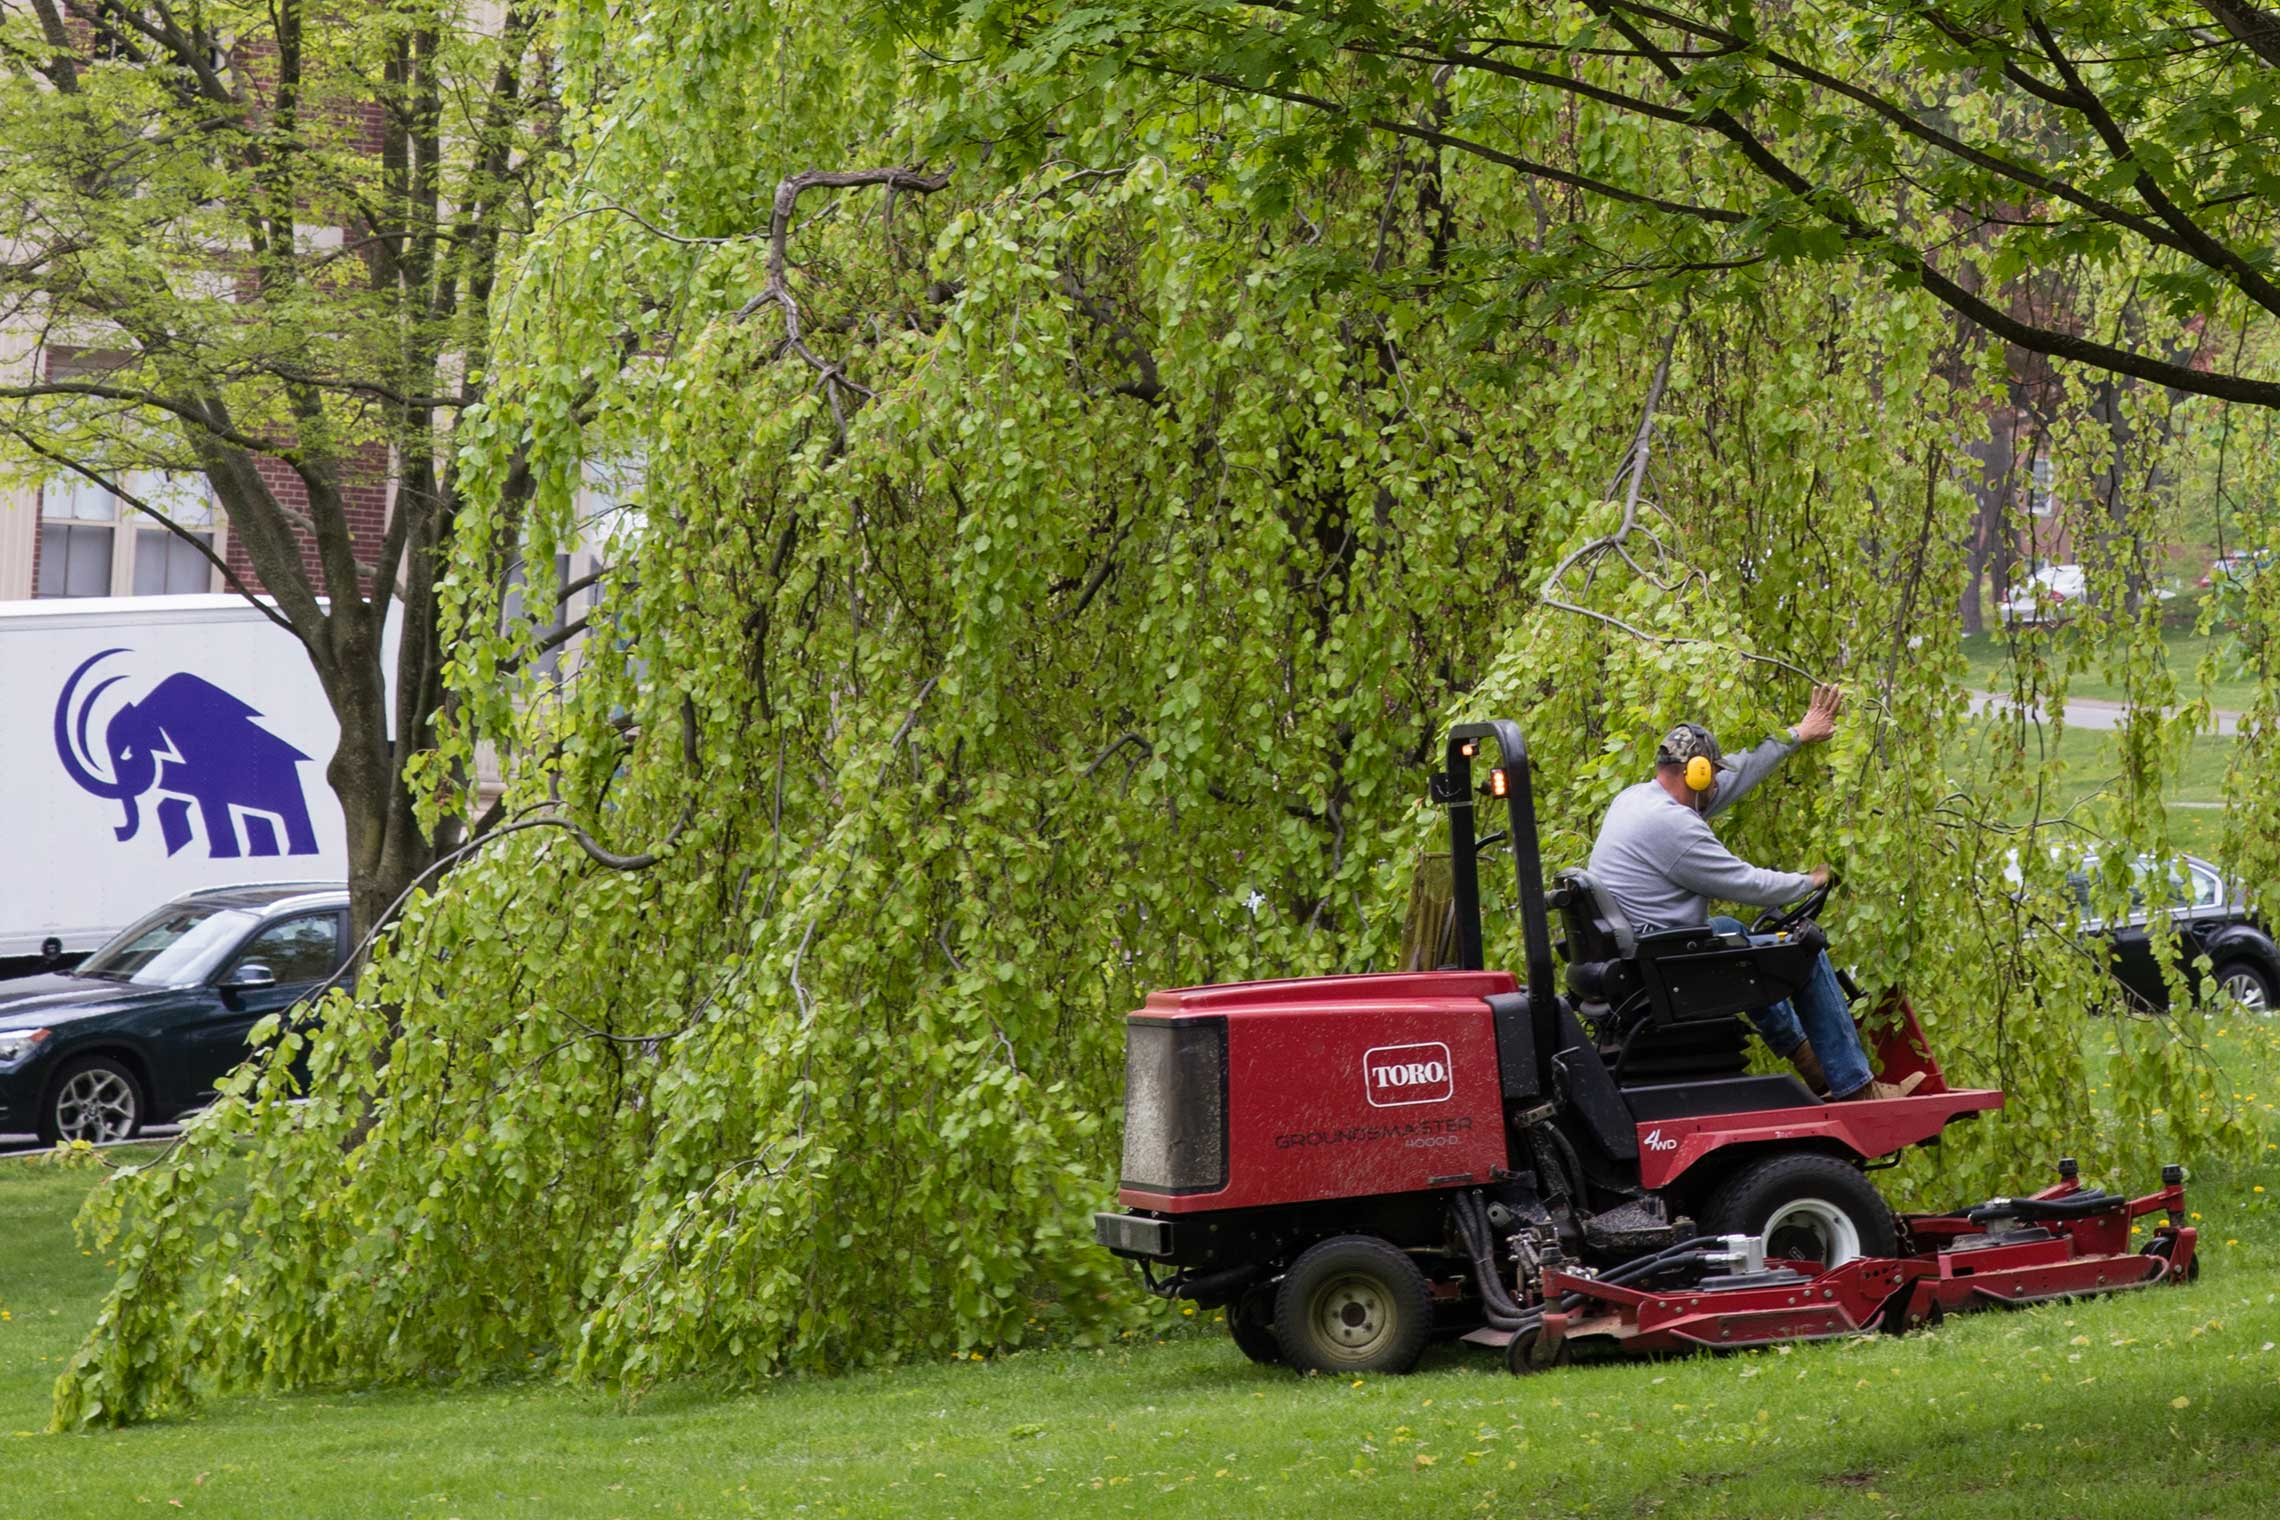 Mowing the grass on the Amherst College campus